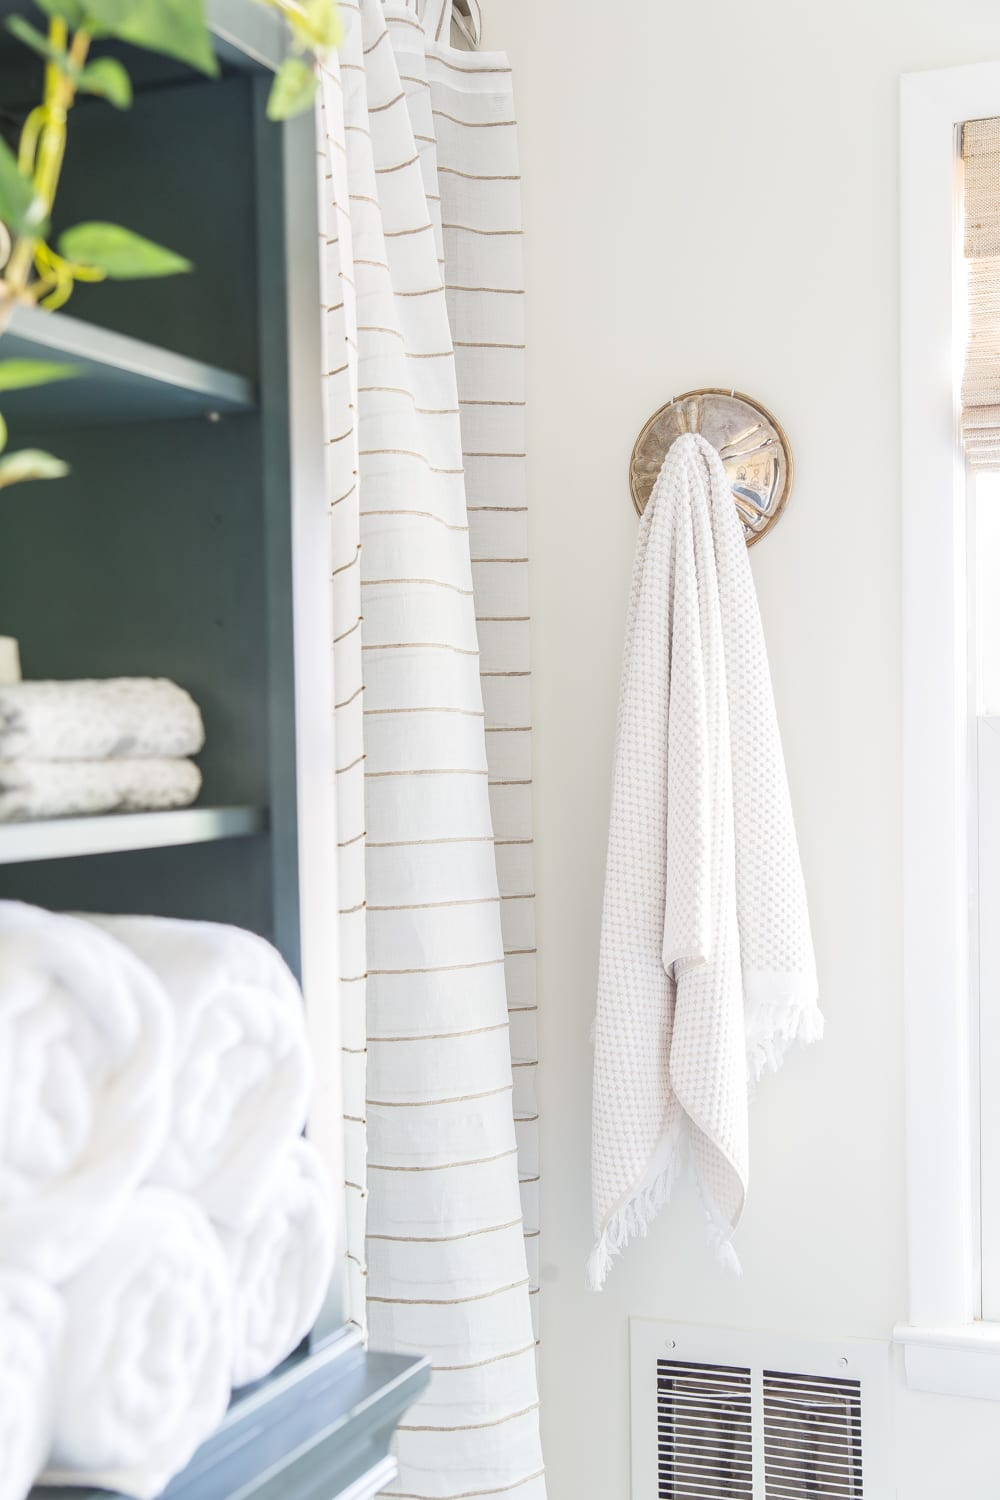 A thrifty solution for using leftover chafing dish lids as towel hooks in a bathroom. #bathroomdecor #wallhooks #towelhooks #chafingdishlid